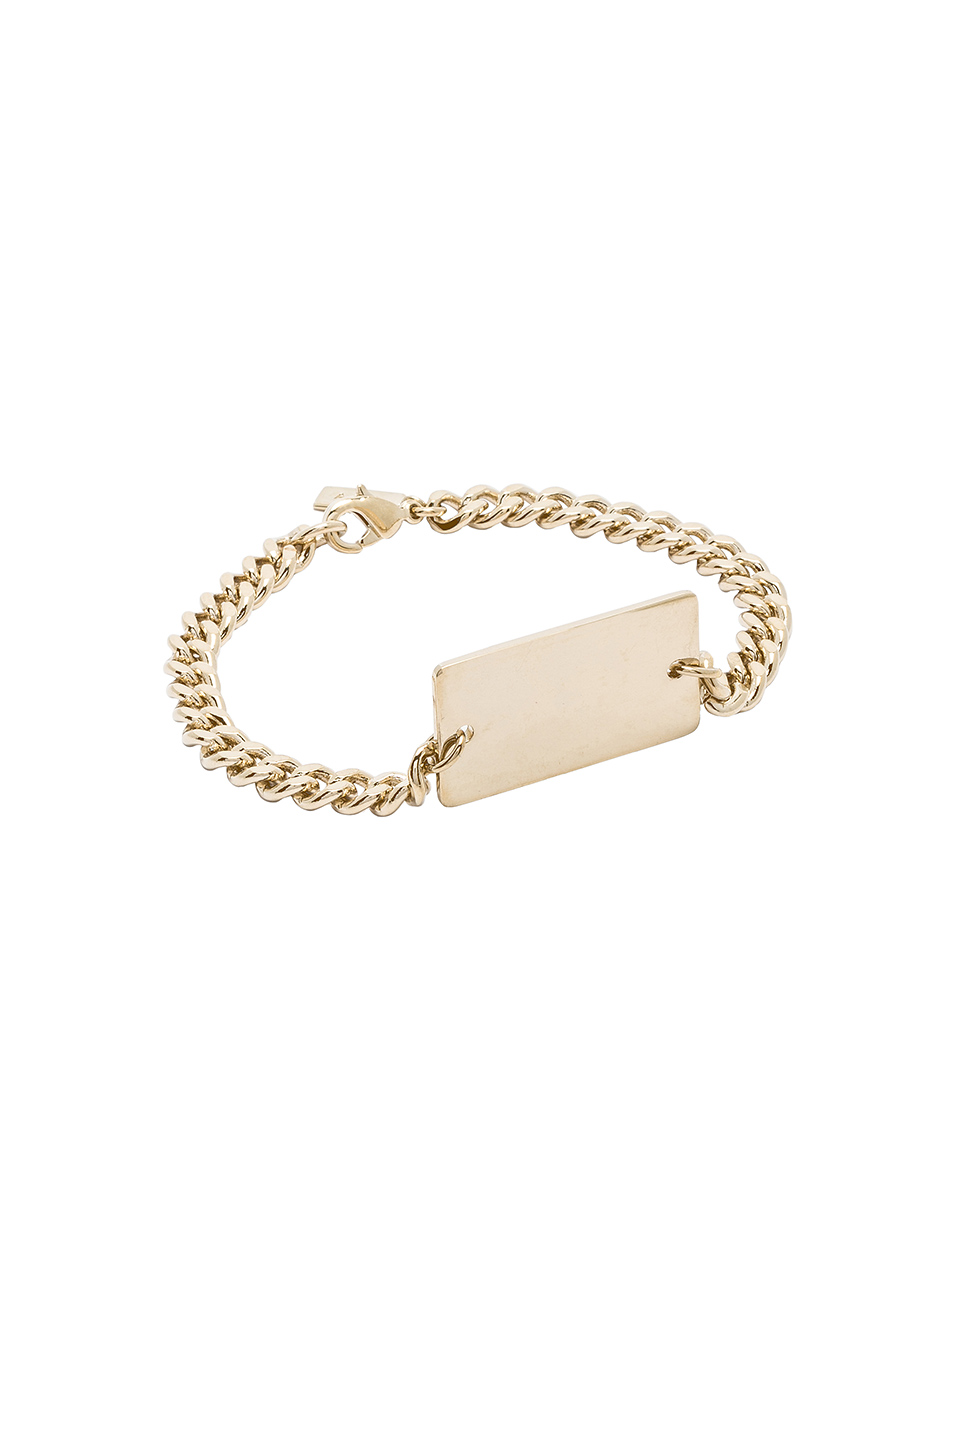 A.P.C. Lord Bracelet in Or Clair